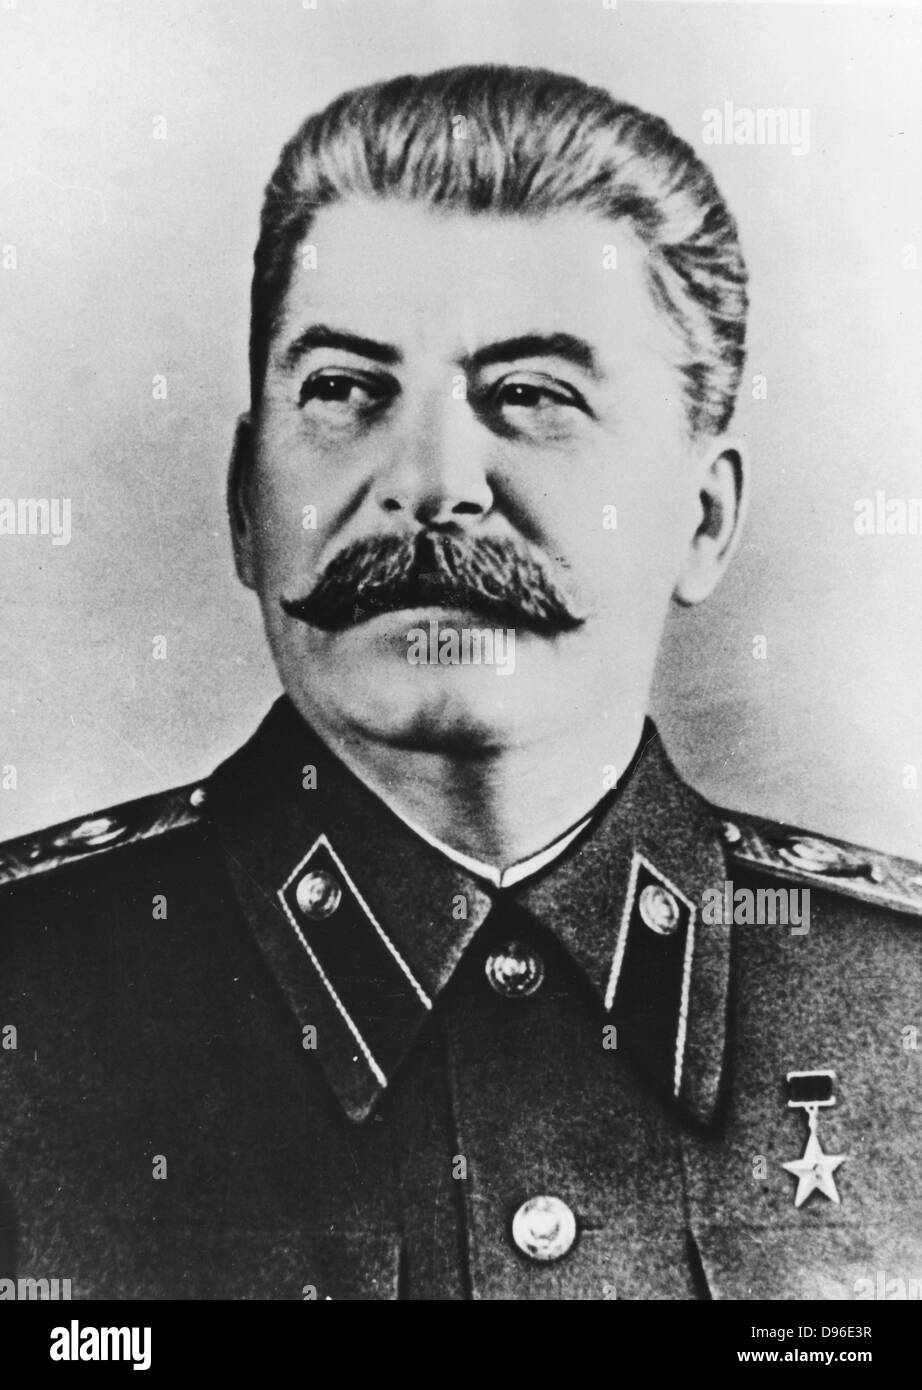 Joseph Stalin (1879-1953) Russian Communist dictator. - Stock Image